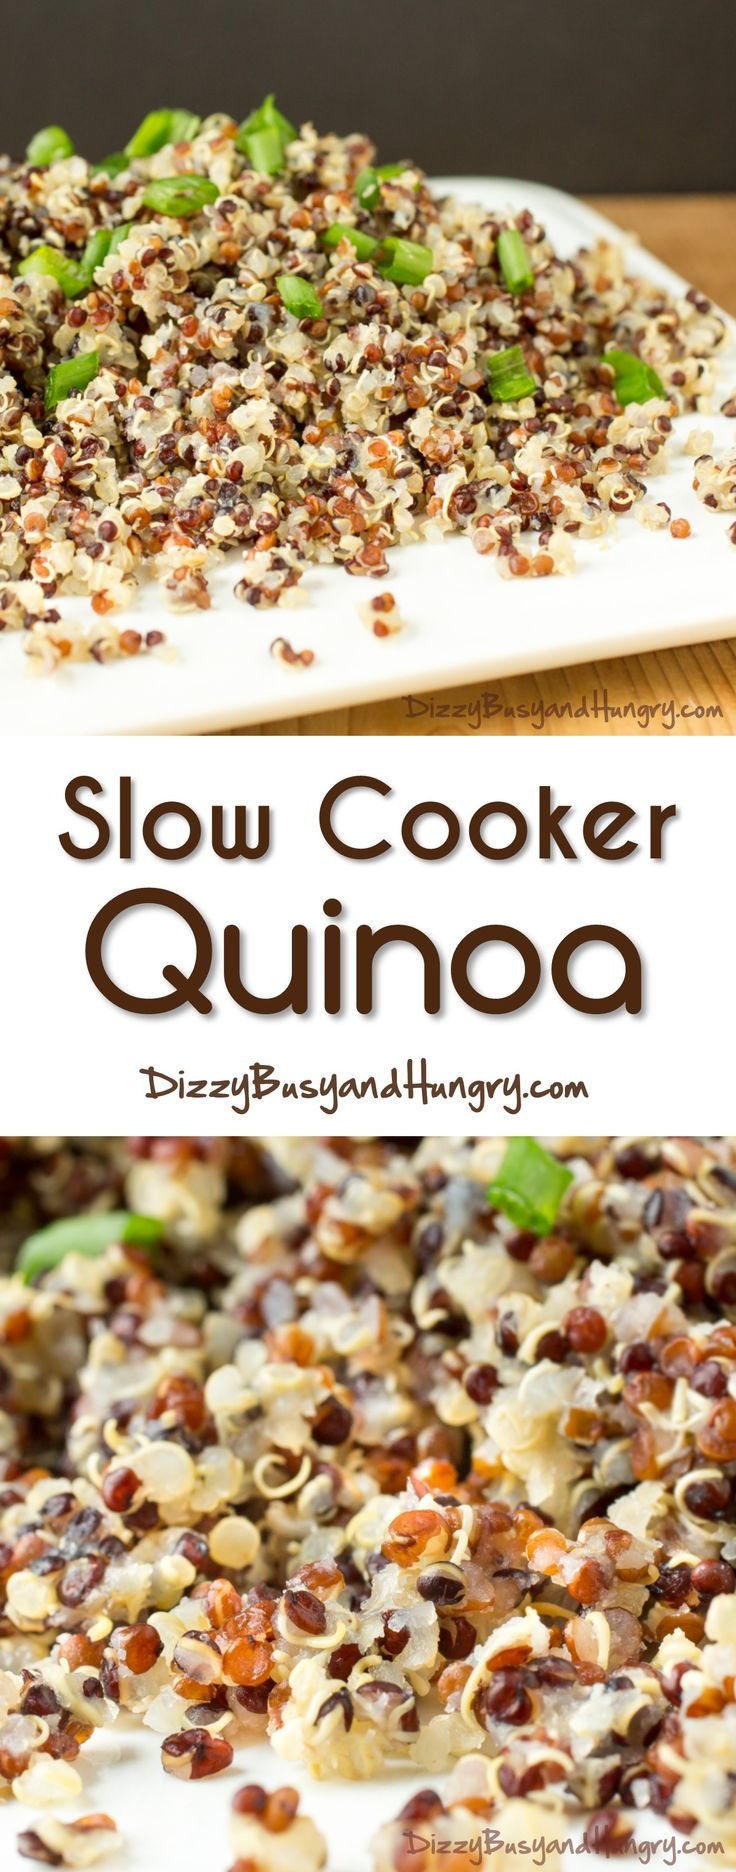 Slow Cooker Quinoa  Dizzybusyandhungry  The Easiest Way To Get  Perfectly Cooked Quinoa